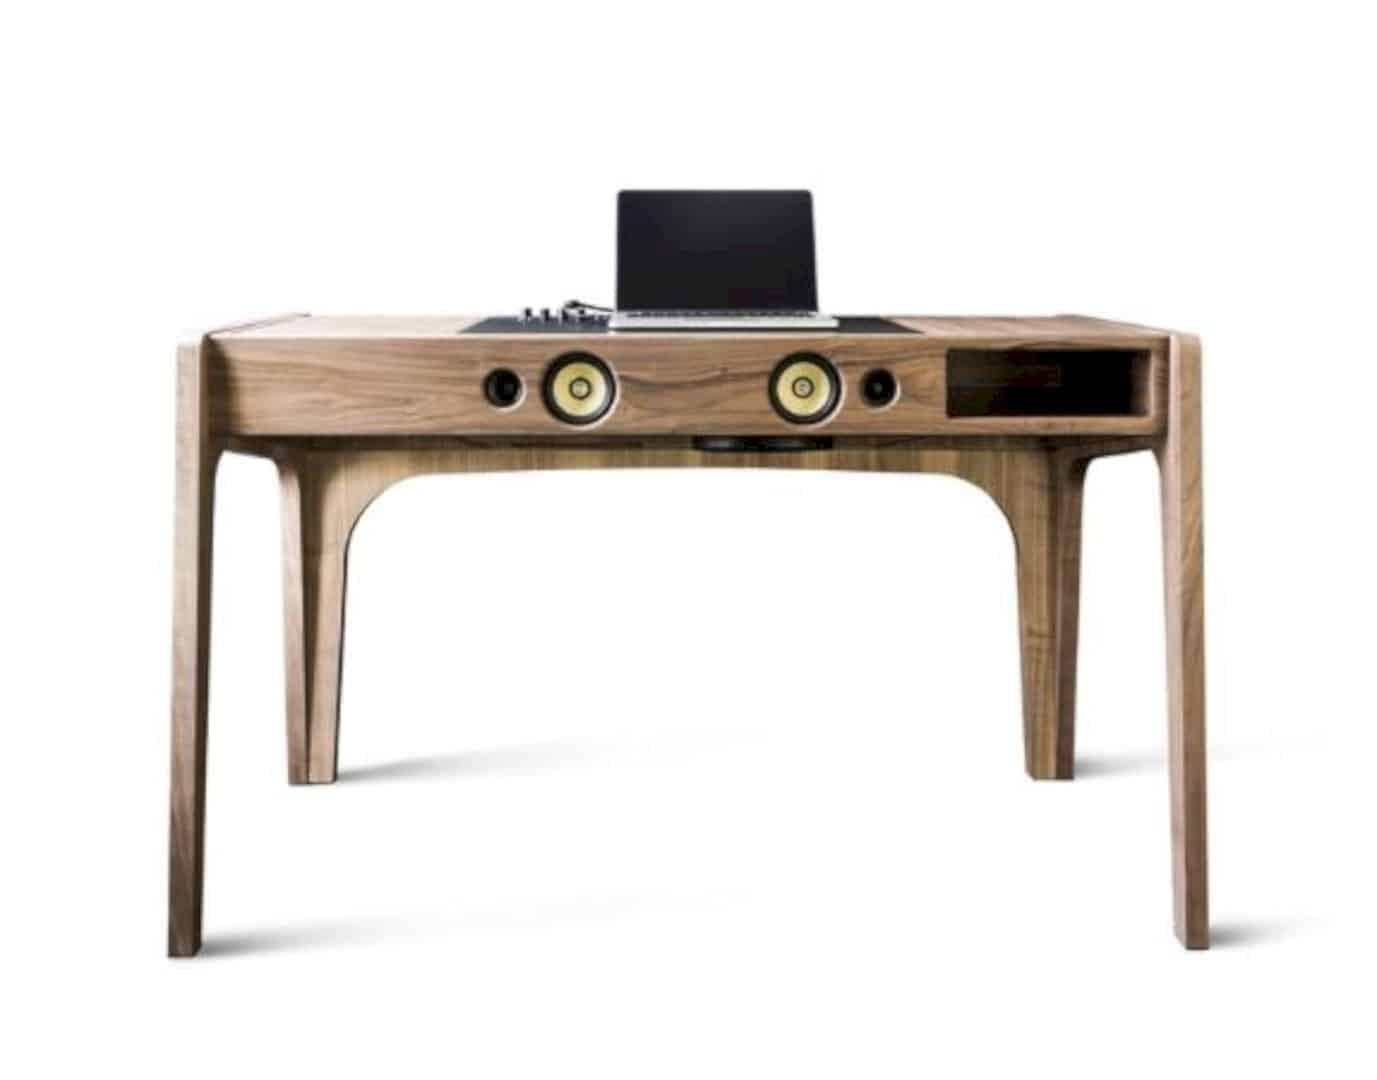 LD Studio: A Two-in-One Audio System with Contemporary Design